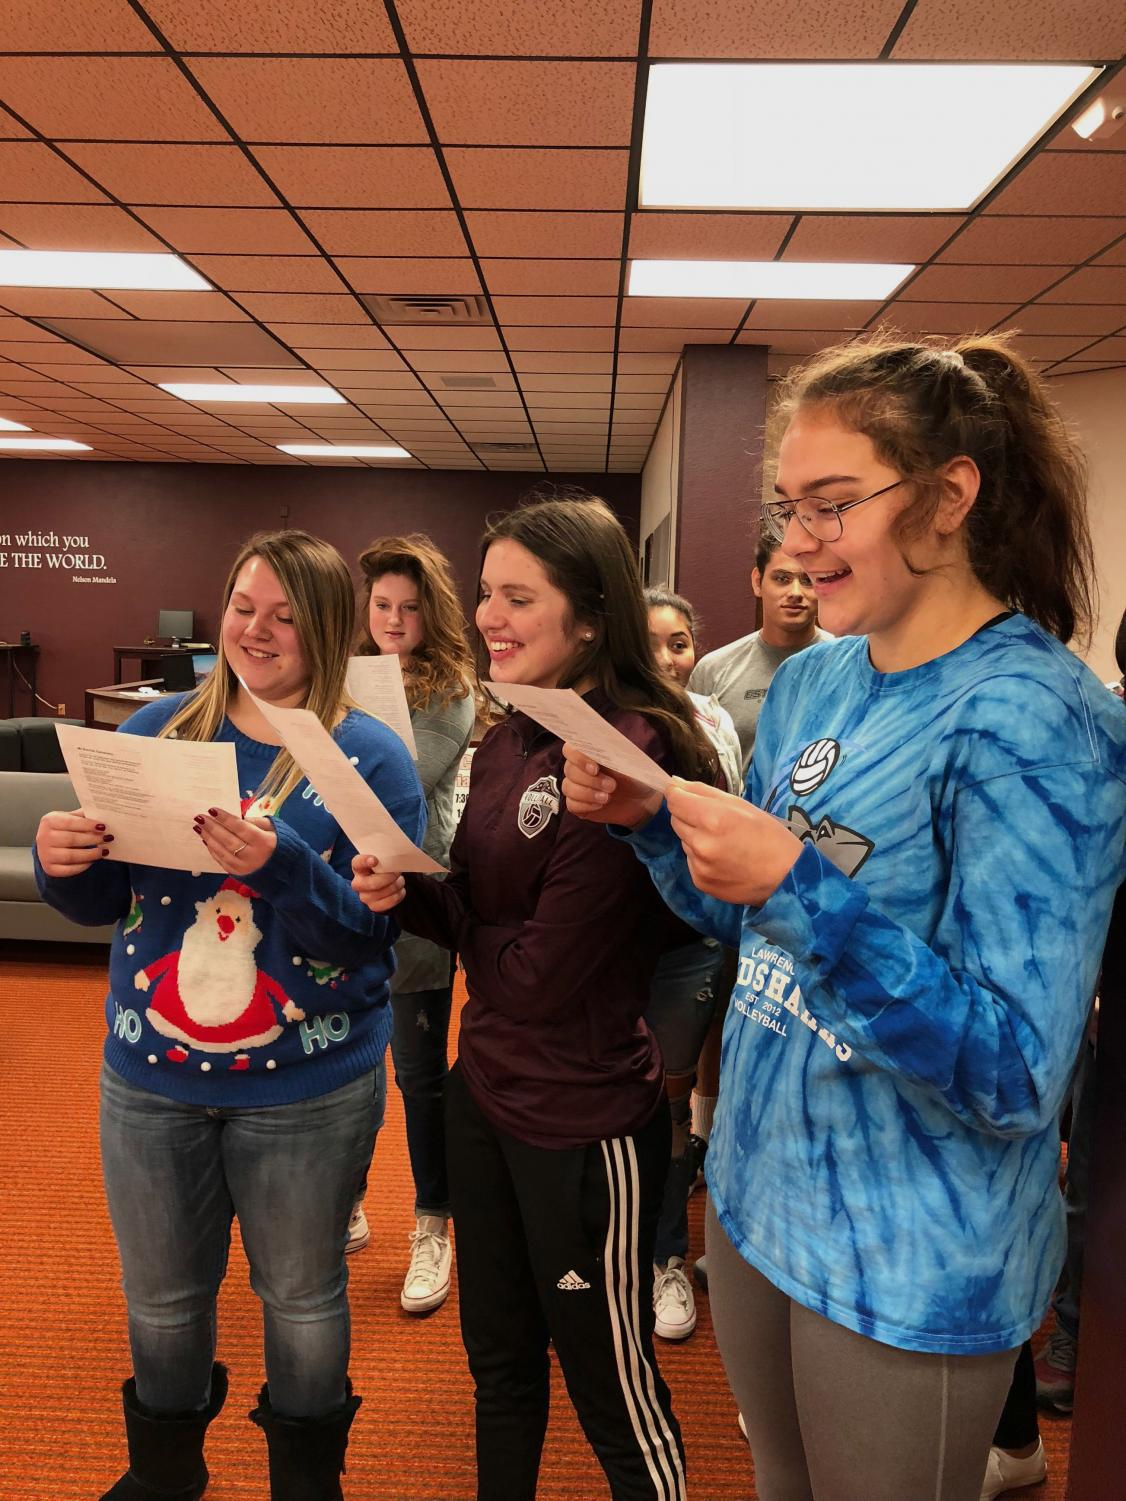 Juniors Lindsey Pfannenstiel, Hannah McGuire and Jaysa Wichers carol in the library during G2. This is their second year caroling.